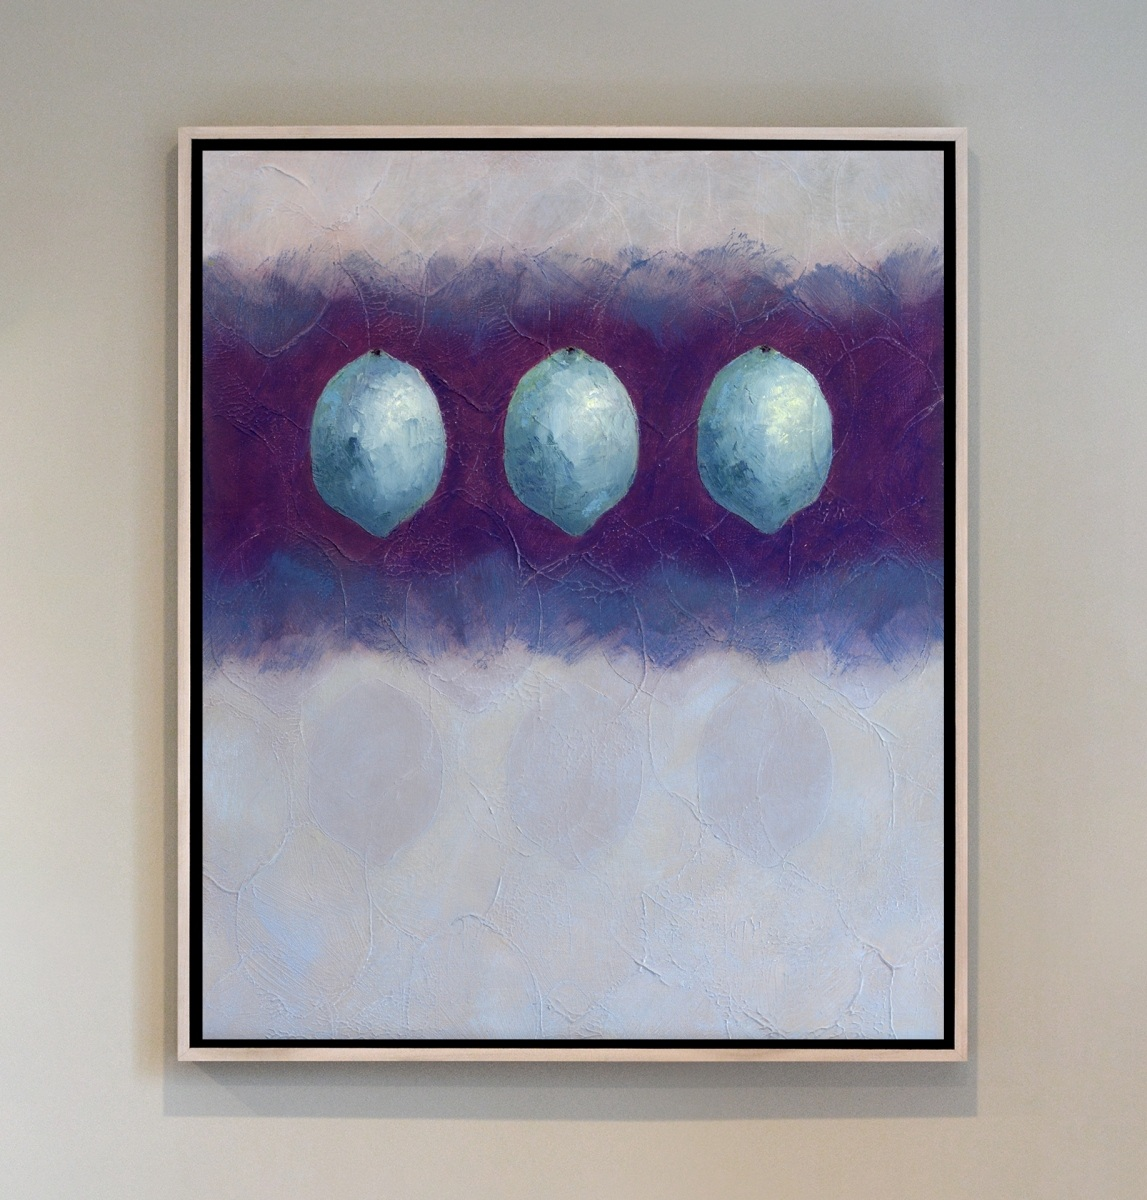 Overprint317. 2020, oil and cold wax on canvas, 20 x 24 in (n317)